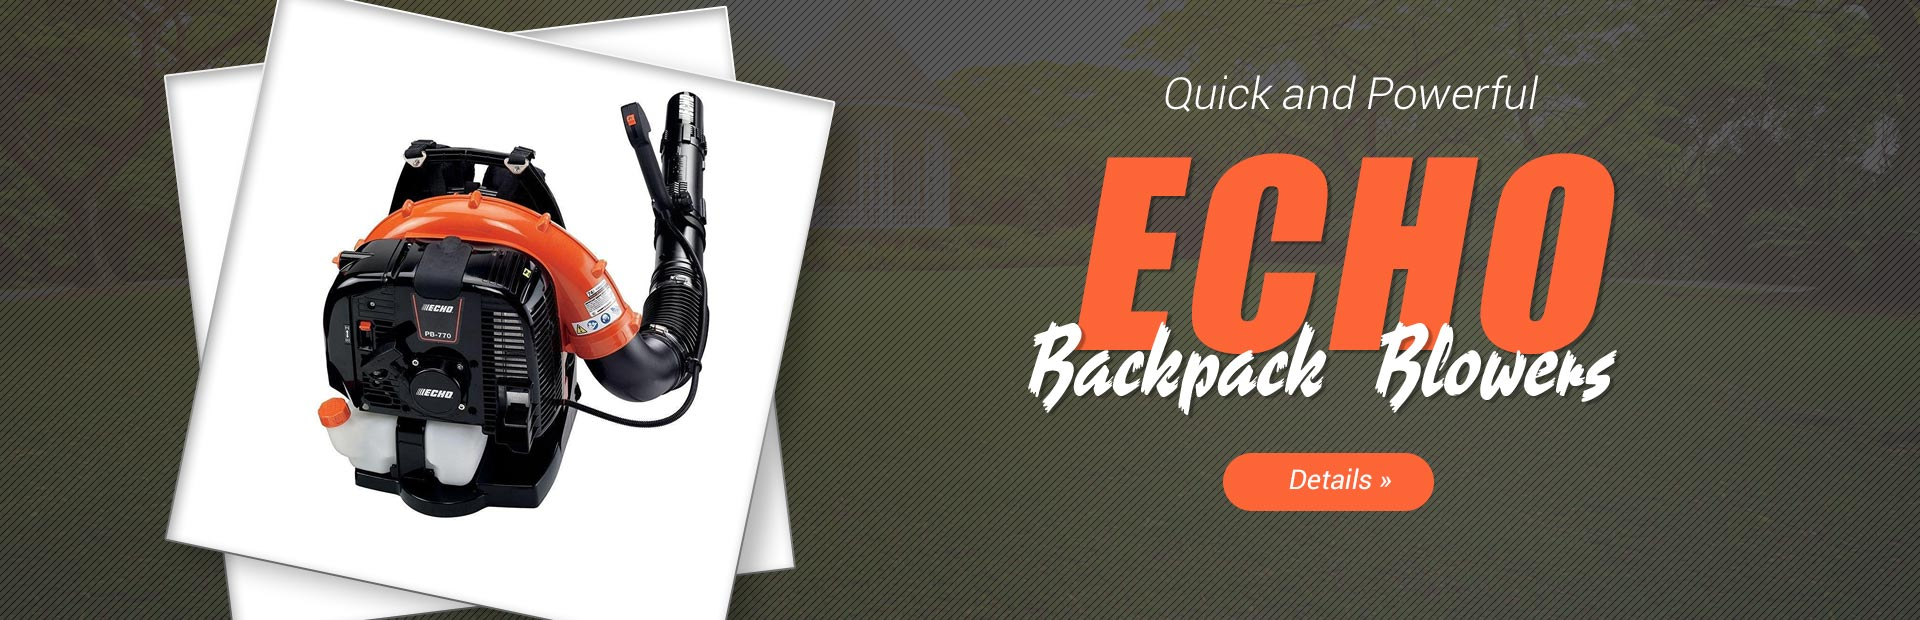 ECHO Backpack Blowers: Click here for details.